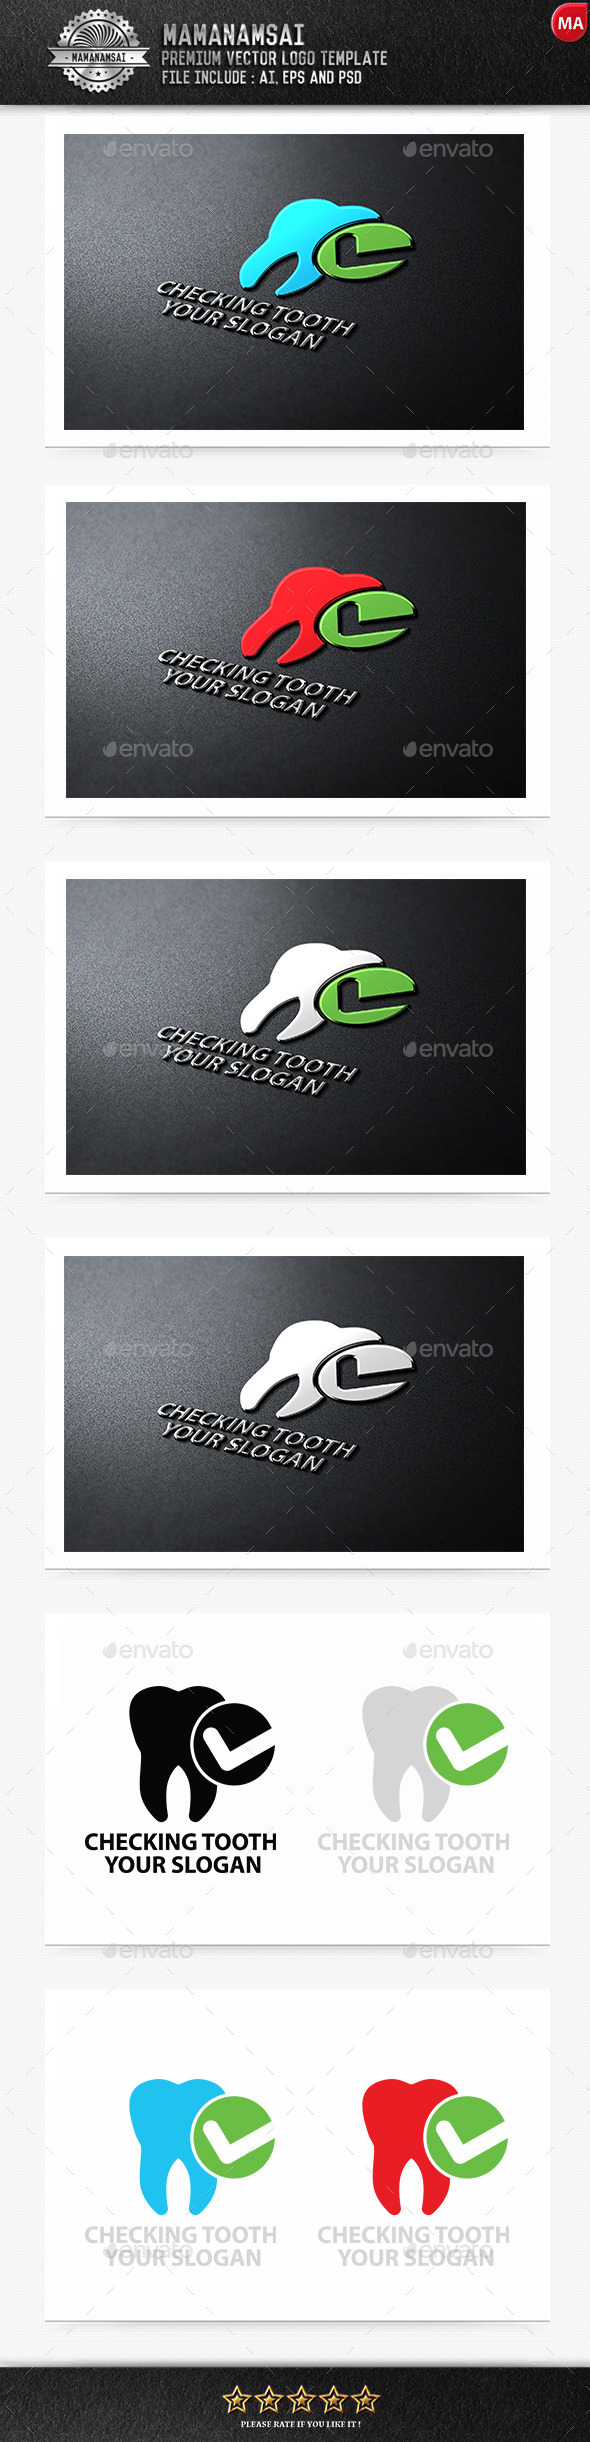 Checking Tooth Logo - Logo Templates